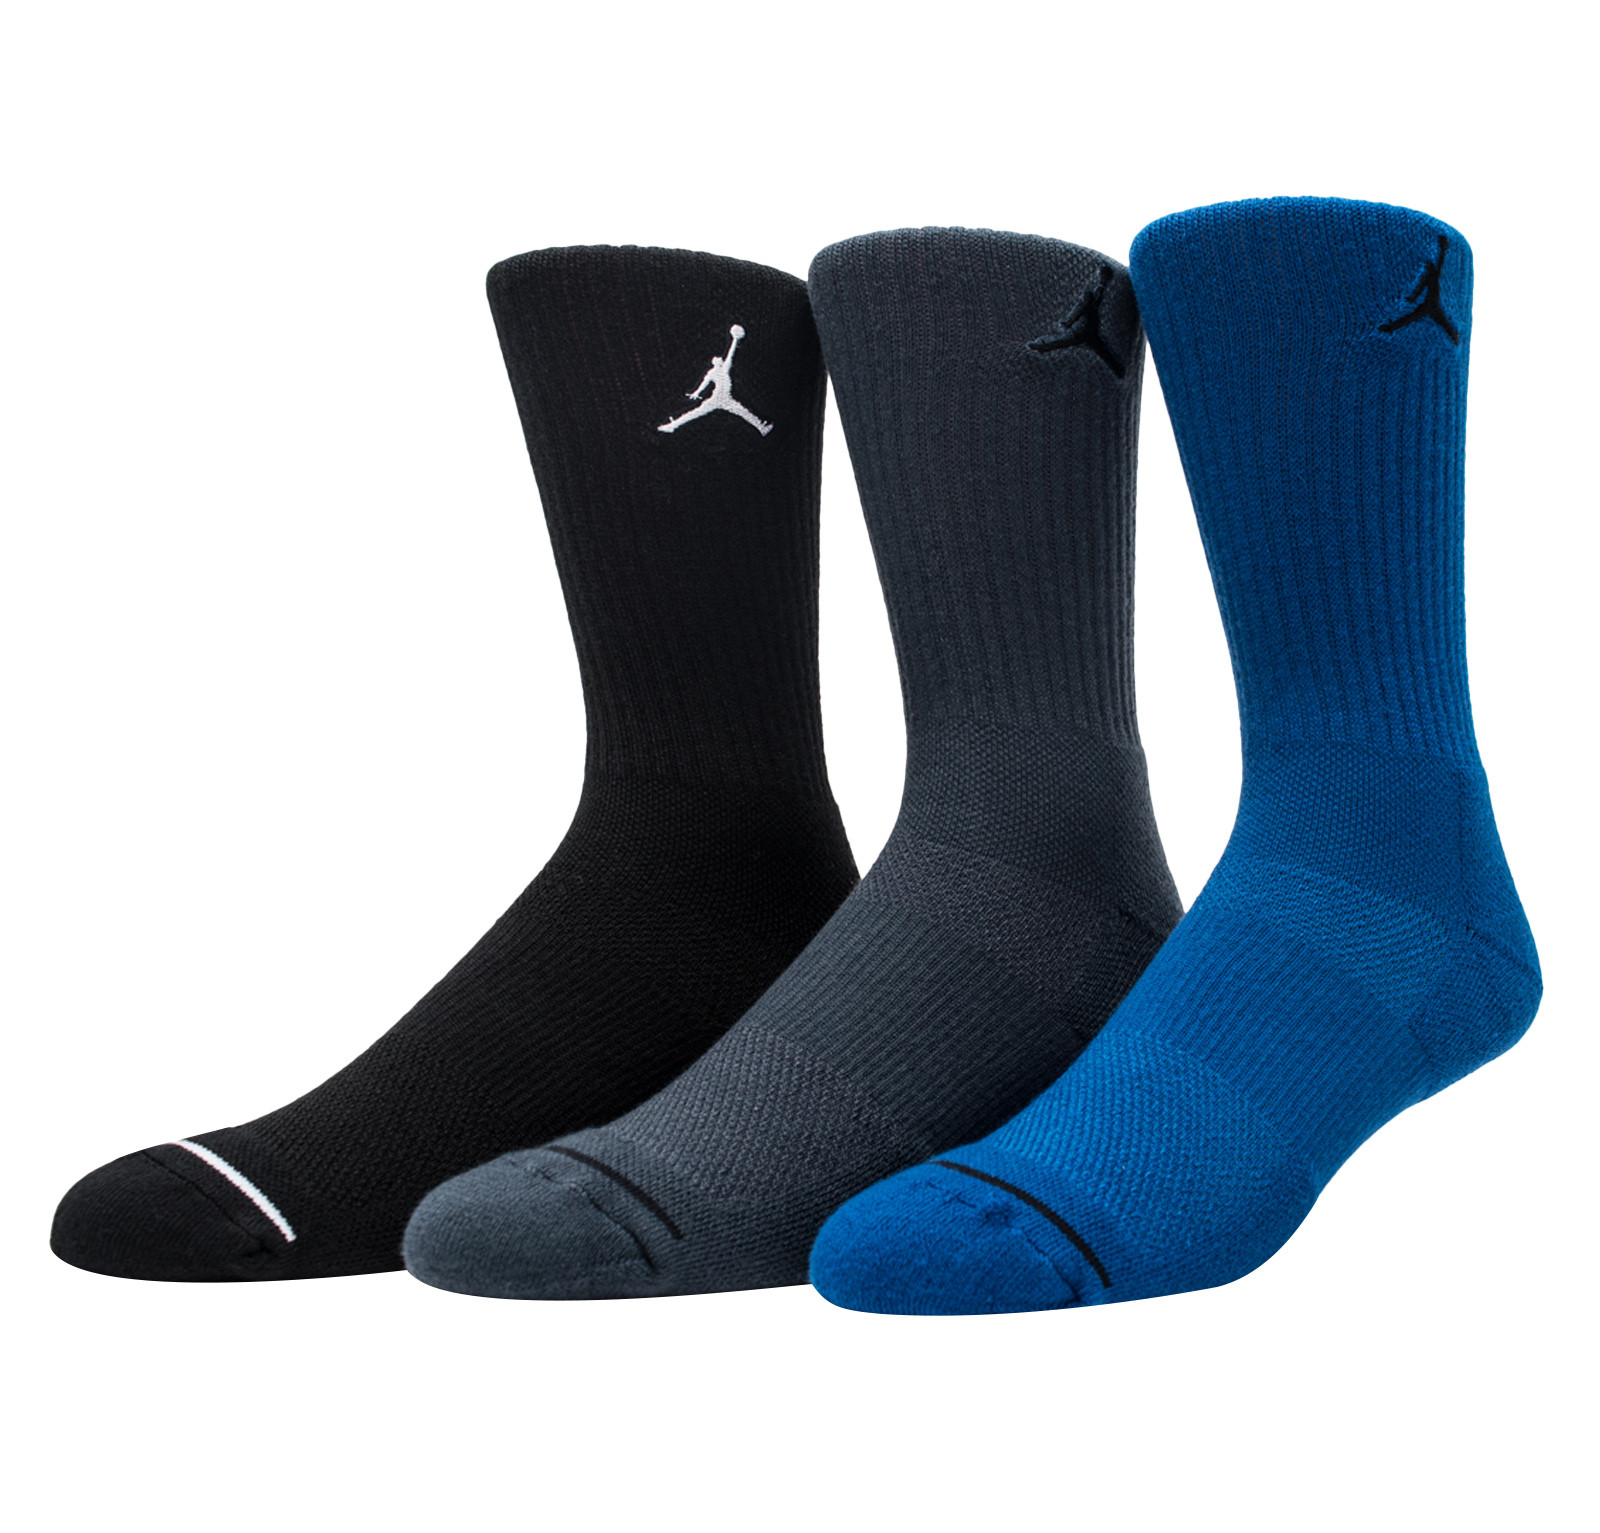 64926abea98fe jordan-jumpman-crew-pack-3-sock-016-black-blue-fox-team-royal-11.jpg